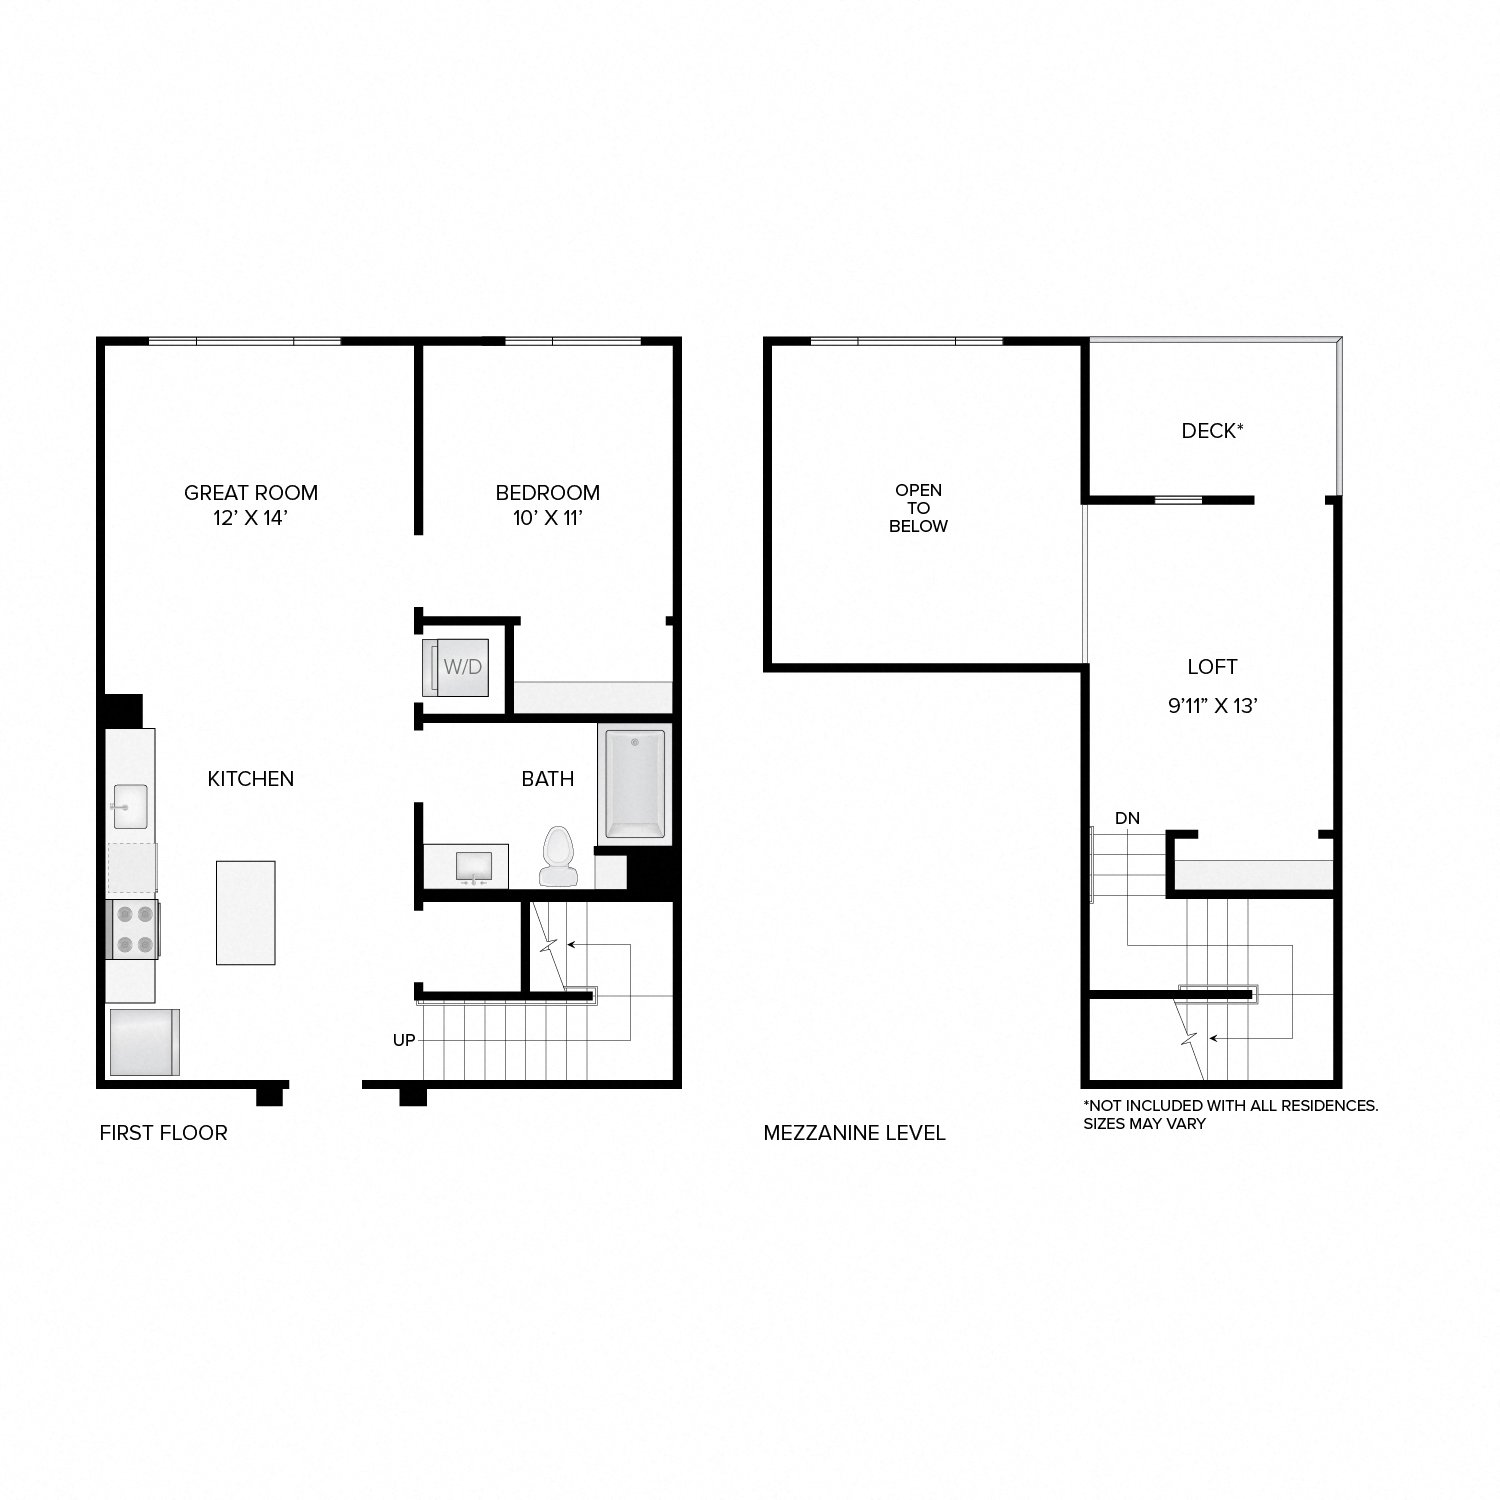 Diagram of the Webster Classic Reverse floor plan. One bedroom, one bathroom, a loft, an open kitchen and living area, a washer dryer, and in select residences, a deck.